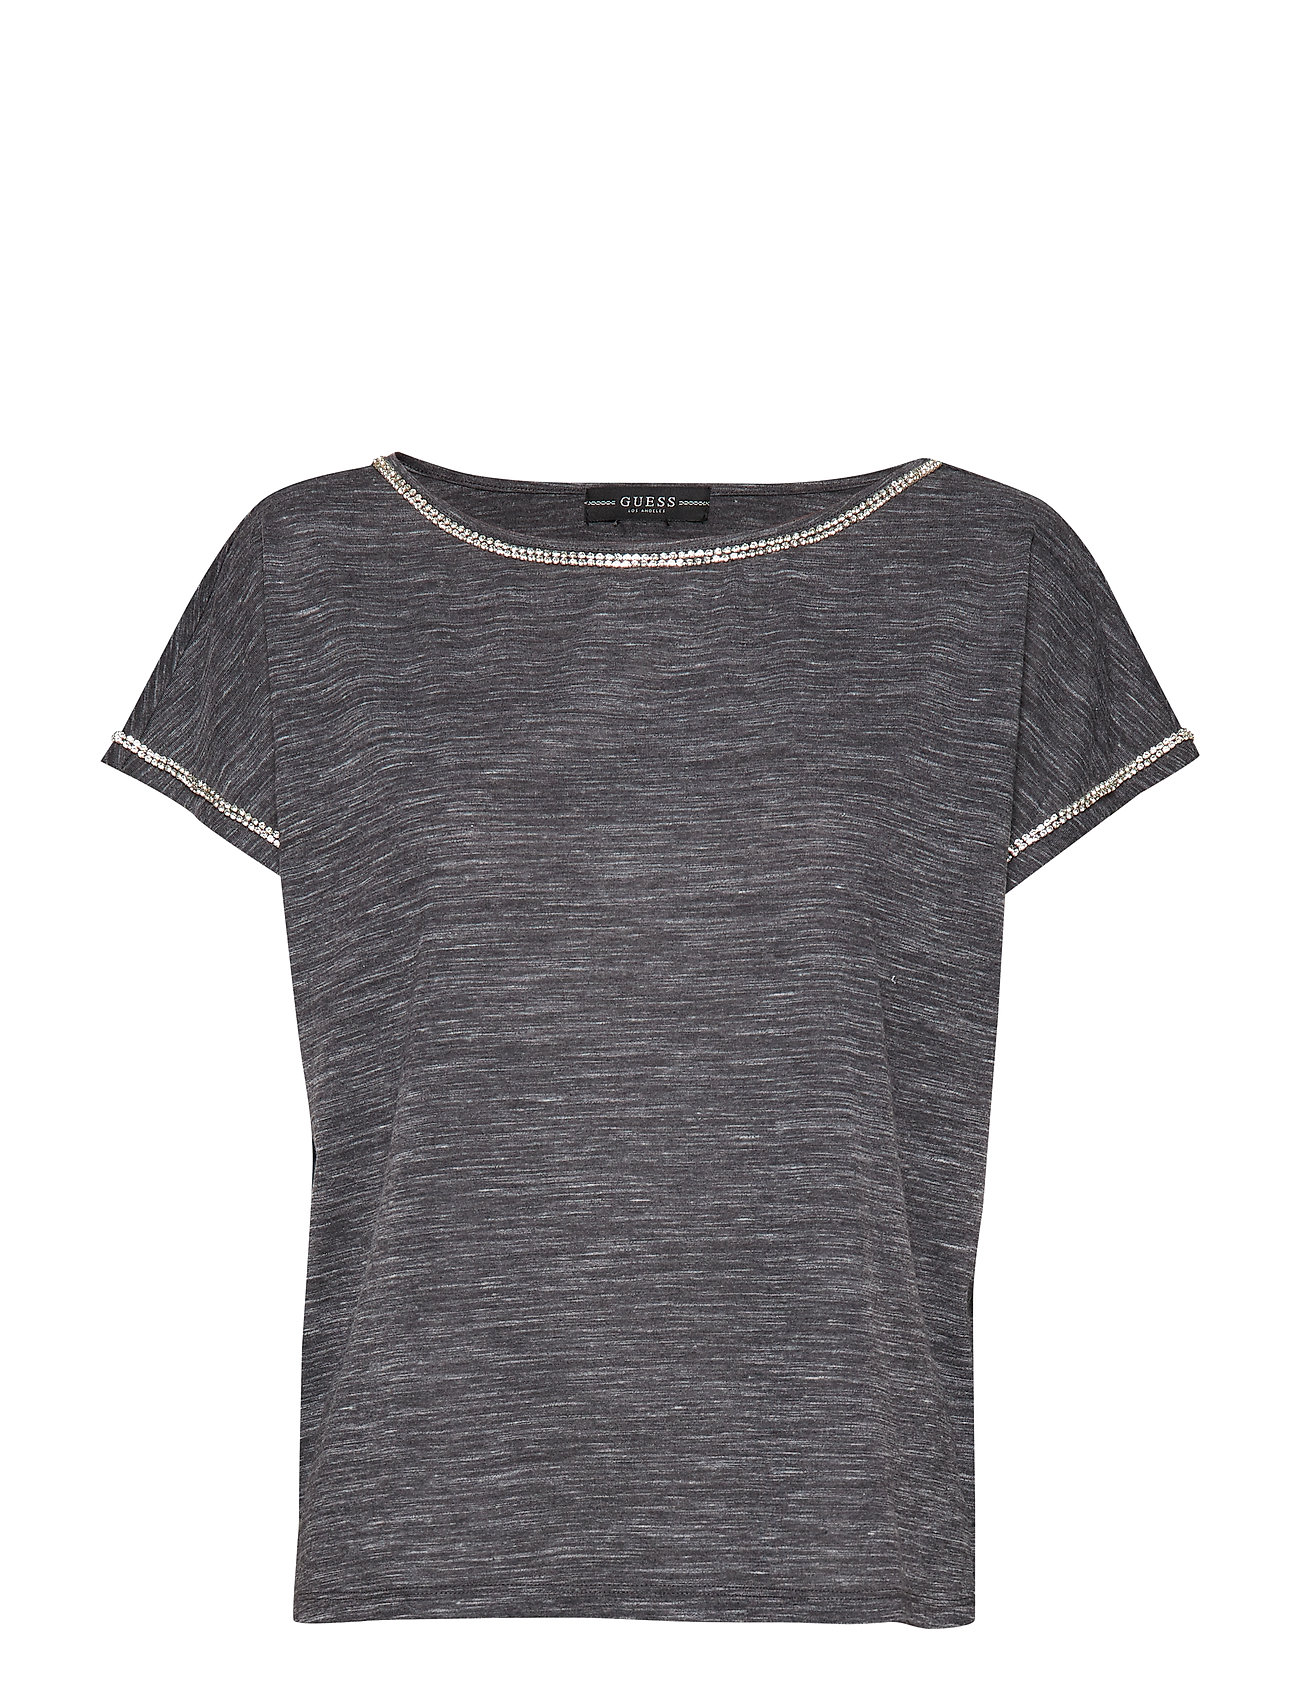 GUESS Jeans FANNY TOP - DARK GREY BURNOUT